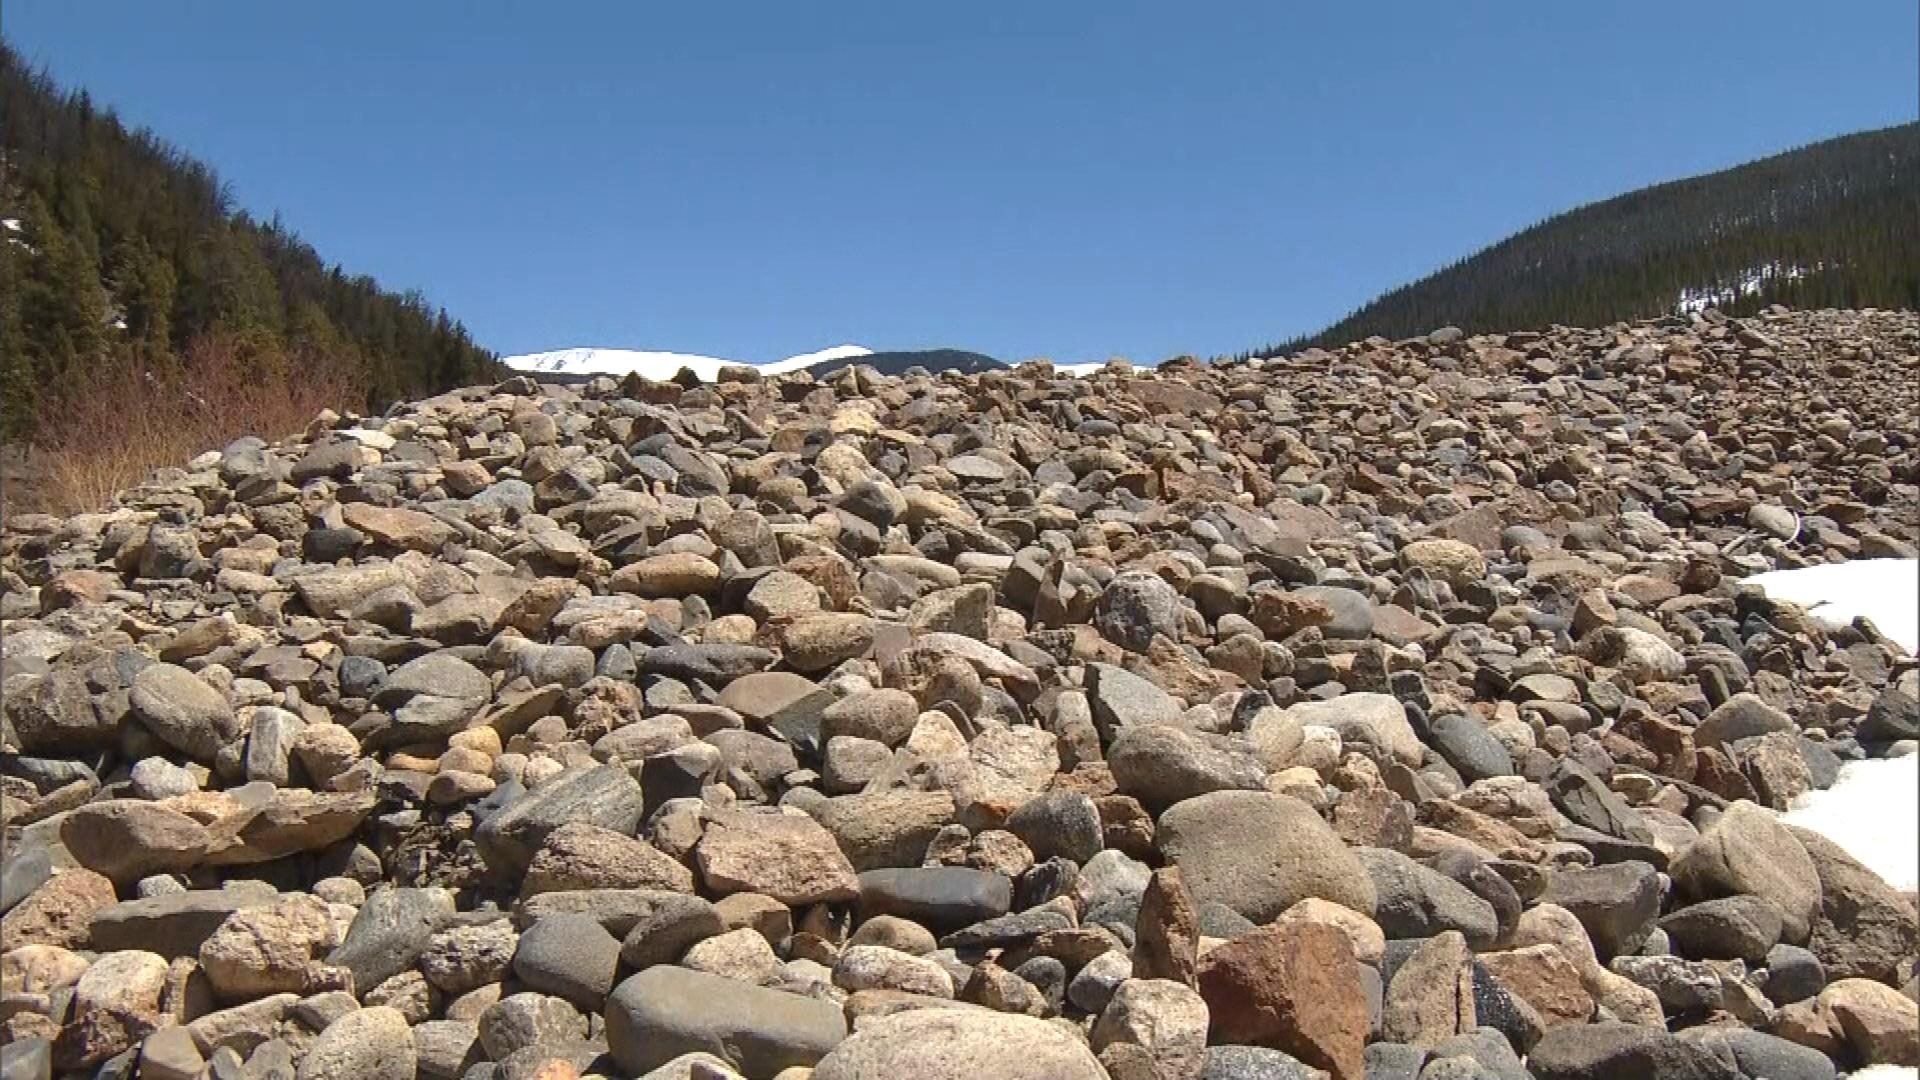 Rocks left behind my mining along the Swan River (credit: CBS)